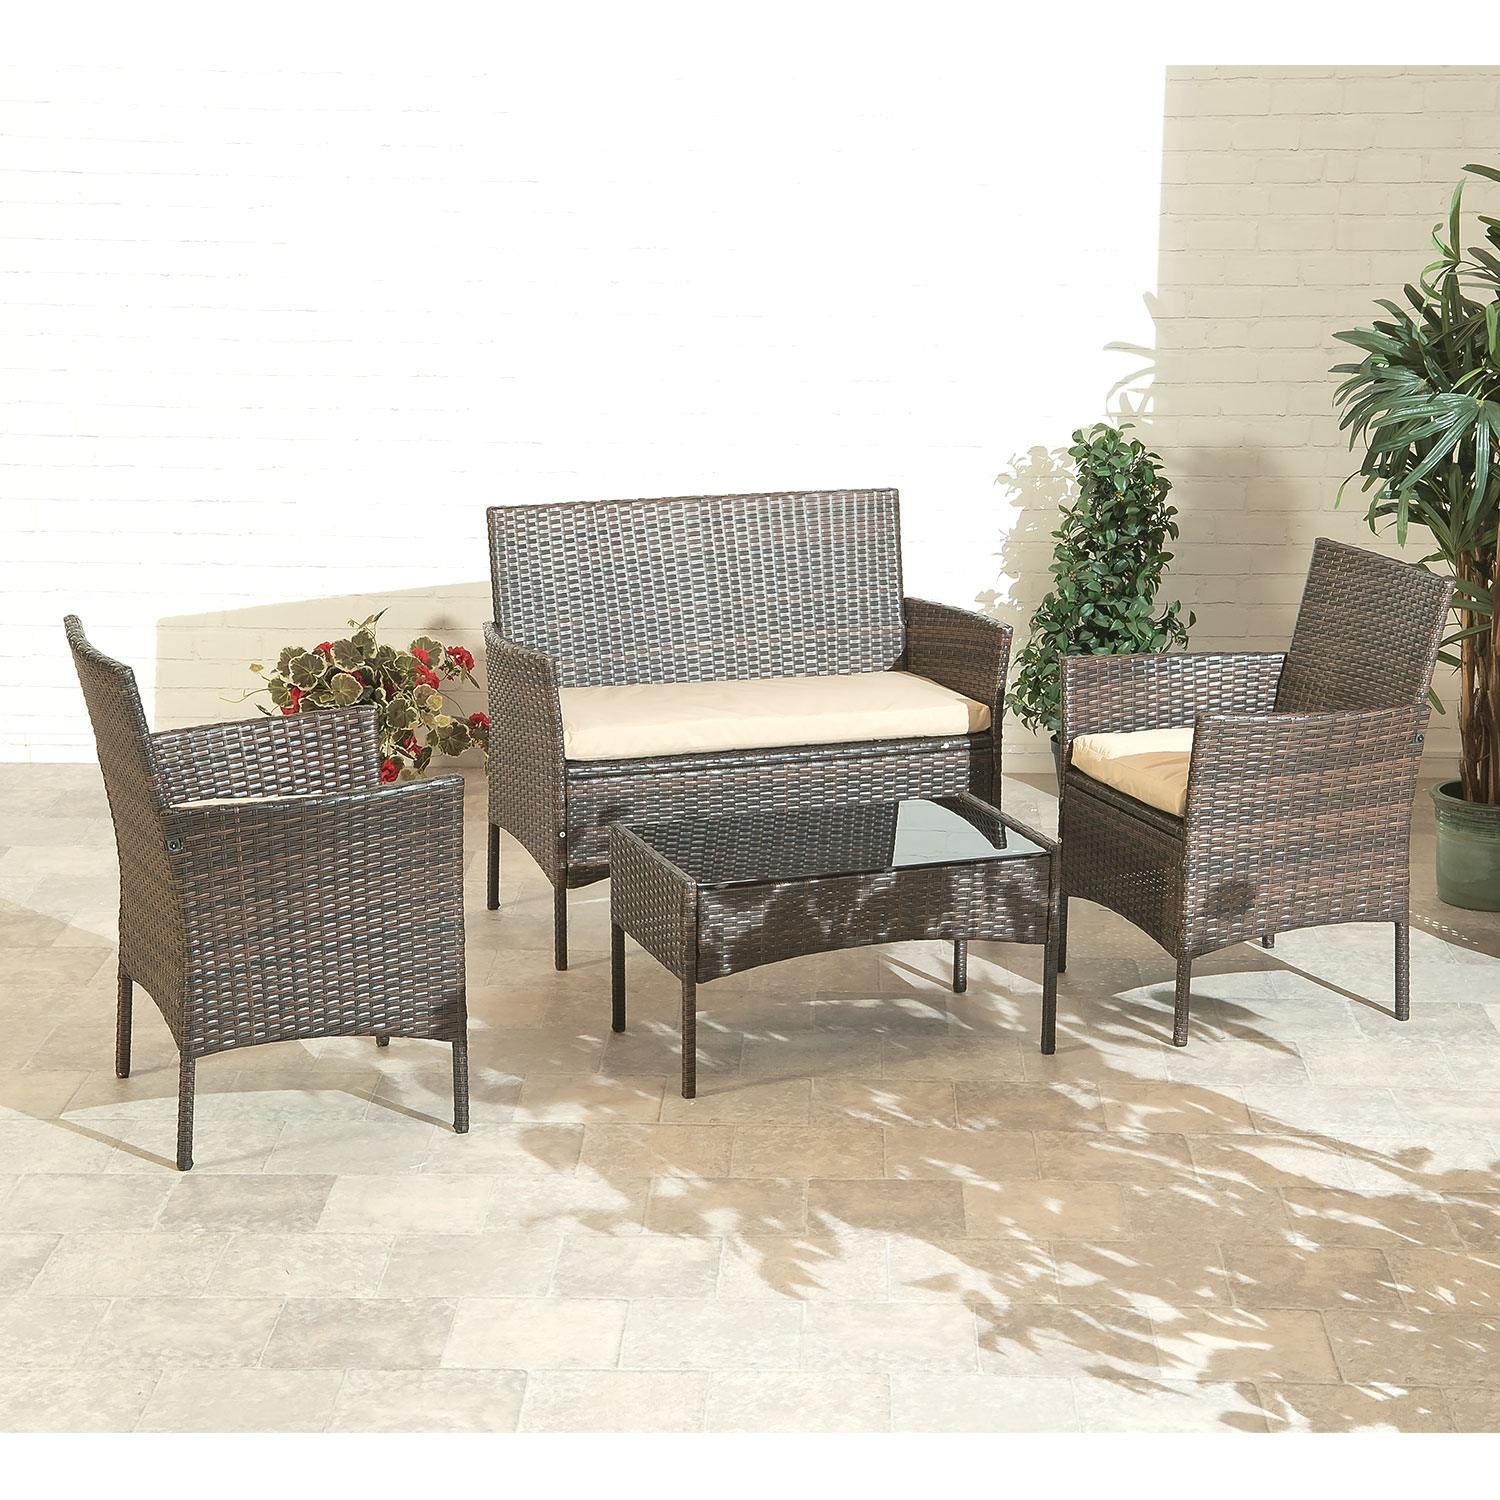 Fabulous Details About Suntime Rattan Garden Sofa Set 4 Piece Outdoor Patio Table Chairs Interior Design Ideas Inesswwsoteloinfo